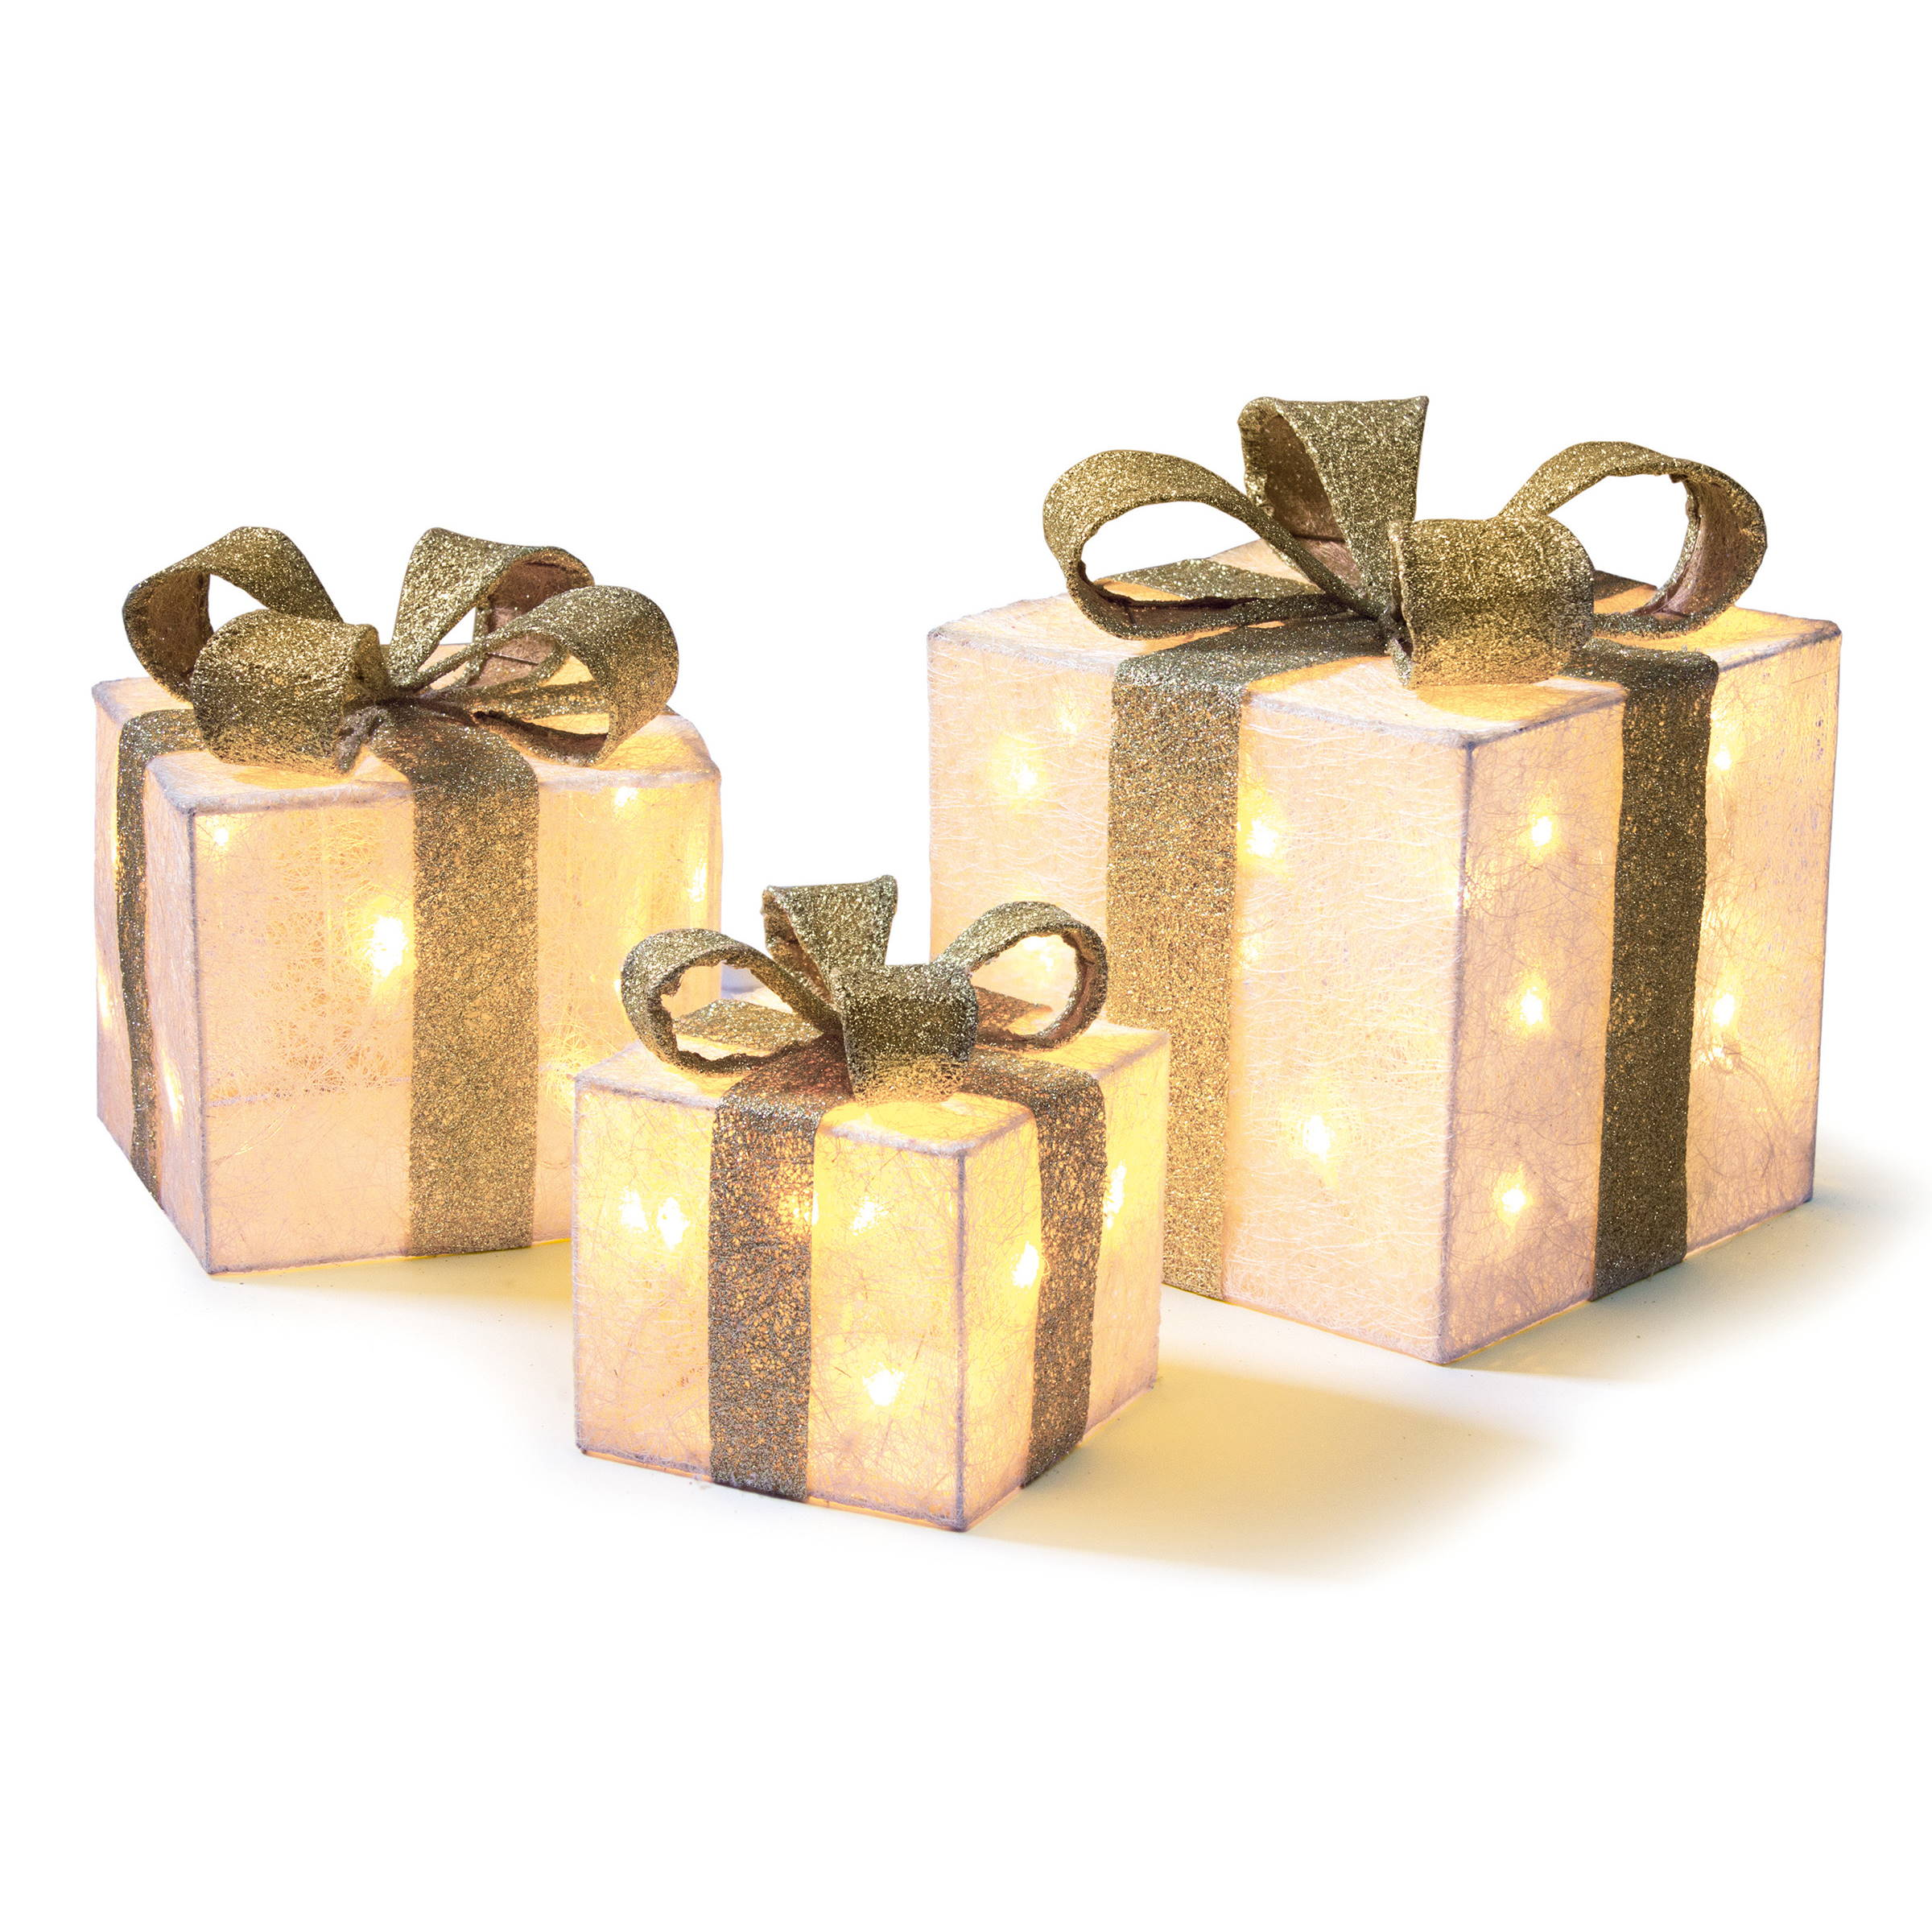 Set of 3 LED Light Up Christmas Parcels - Cream and Gold